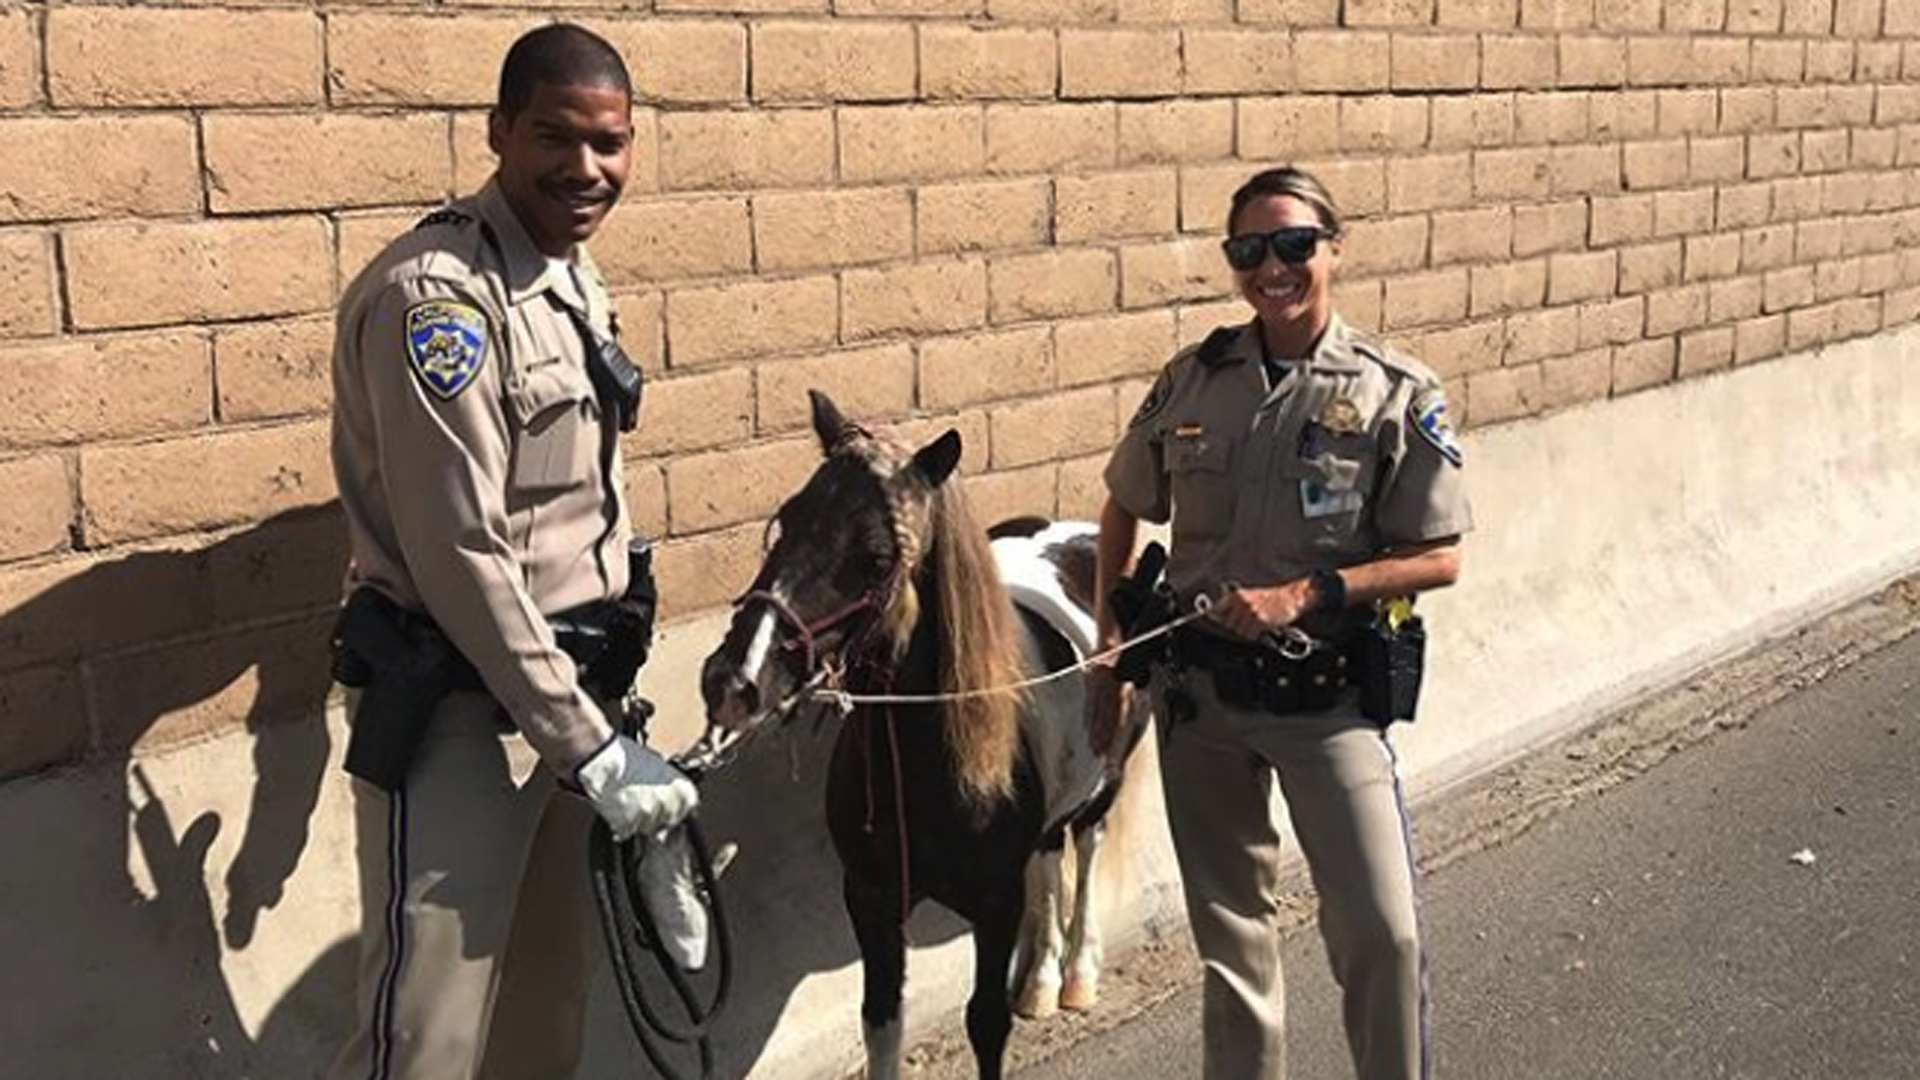 California Highway Patrol officer's wrangled an escaped pony along the 91 Freeway in Long Beach on Sept. 29, 2019. (Credit: CHP)